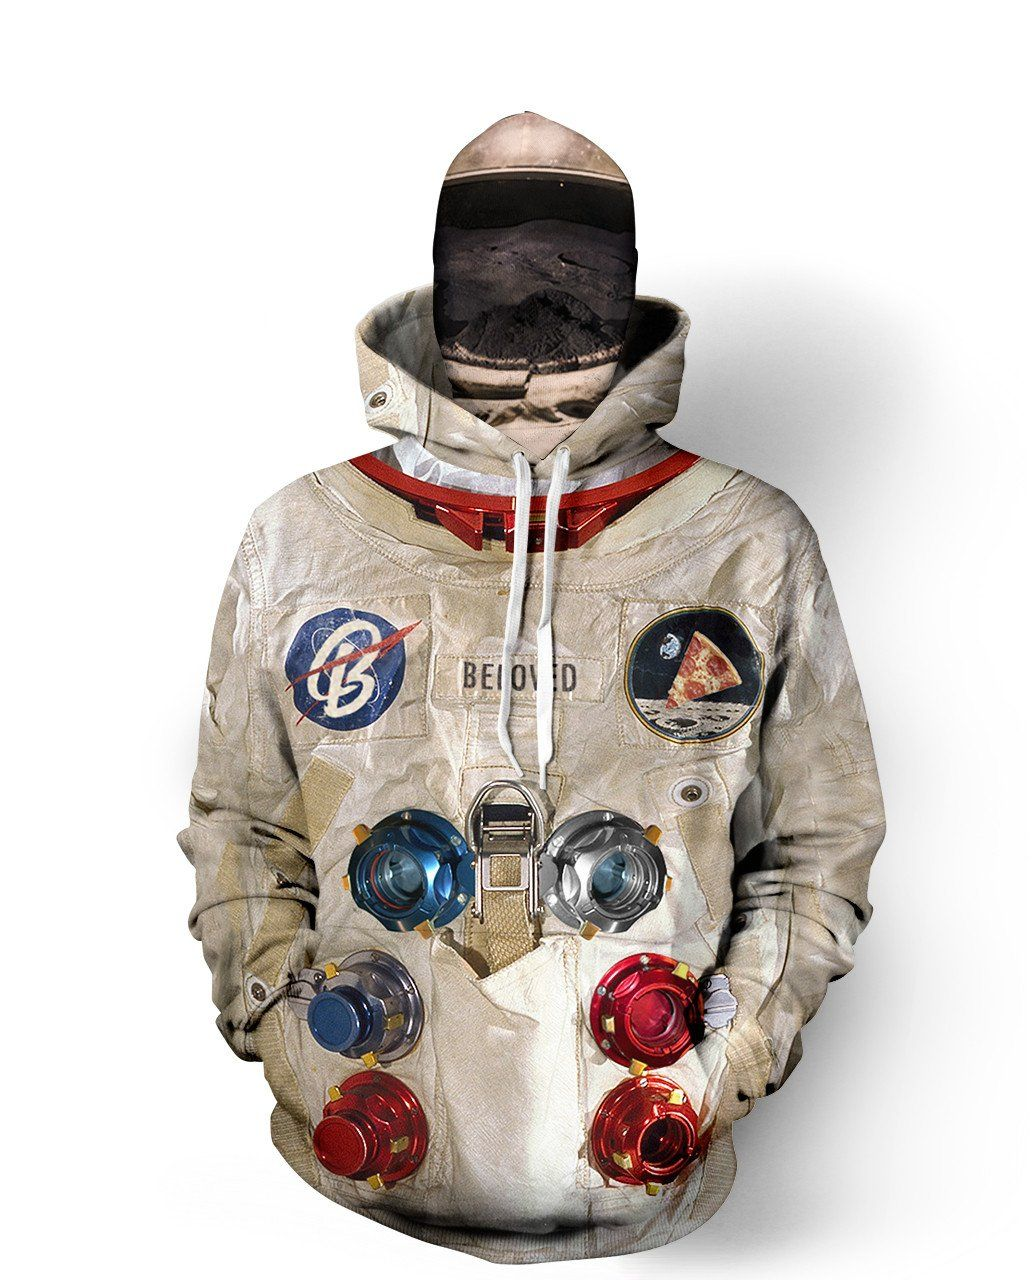 5b91a1dcde Astronaut Suit Hoodie Astronaut Suit, Beloved Shirts, Galaxy Planets,  Closet Space, Nasa